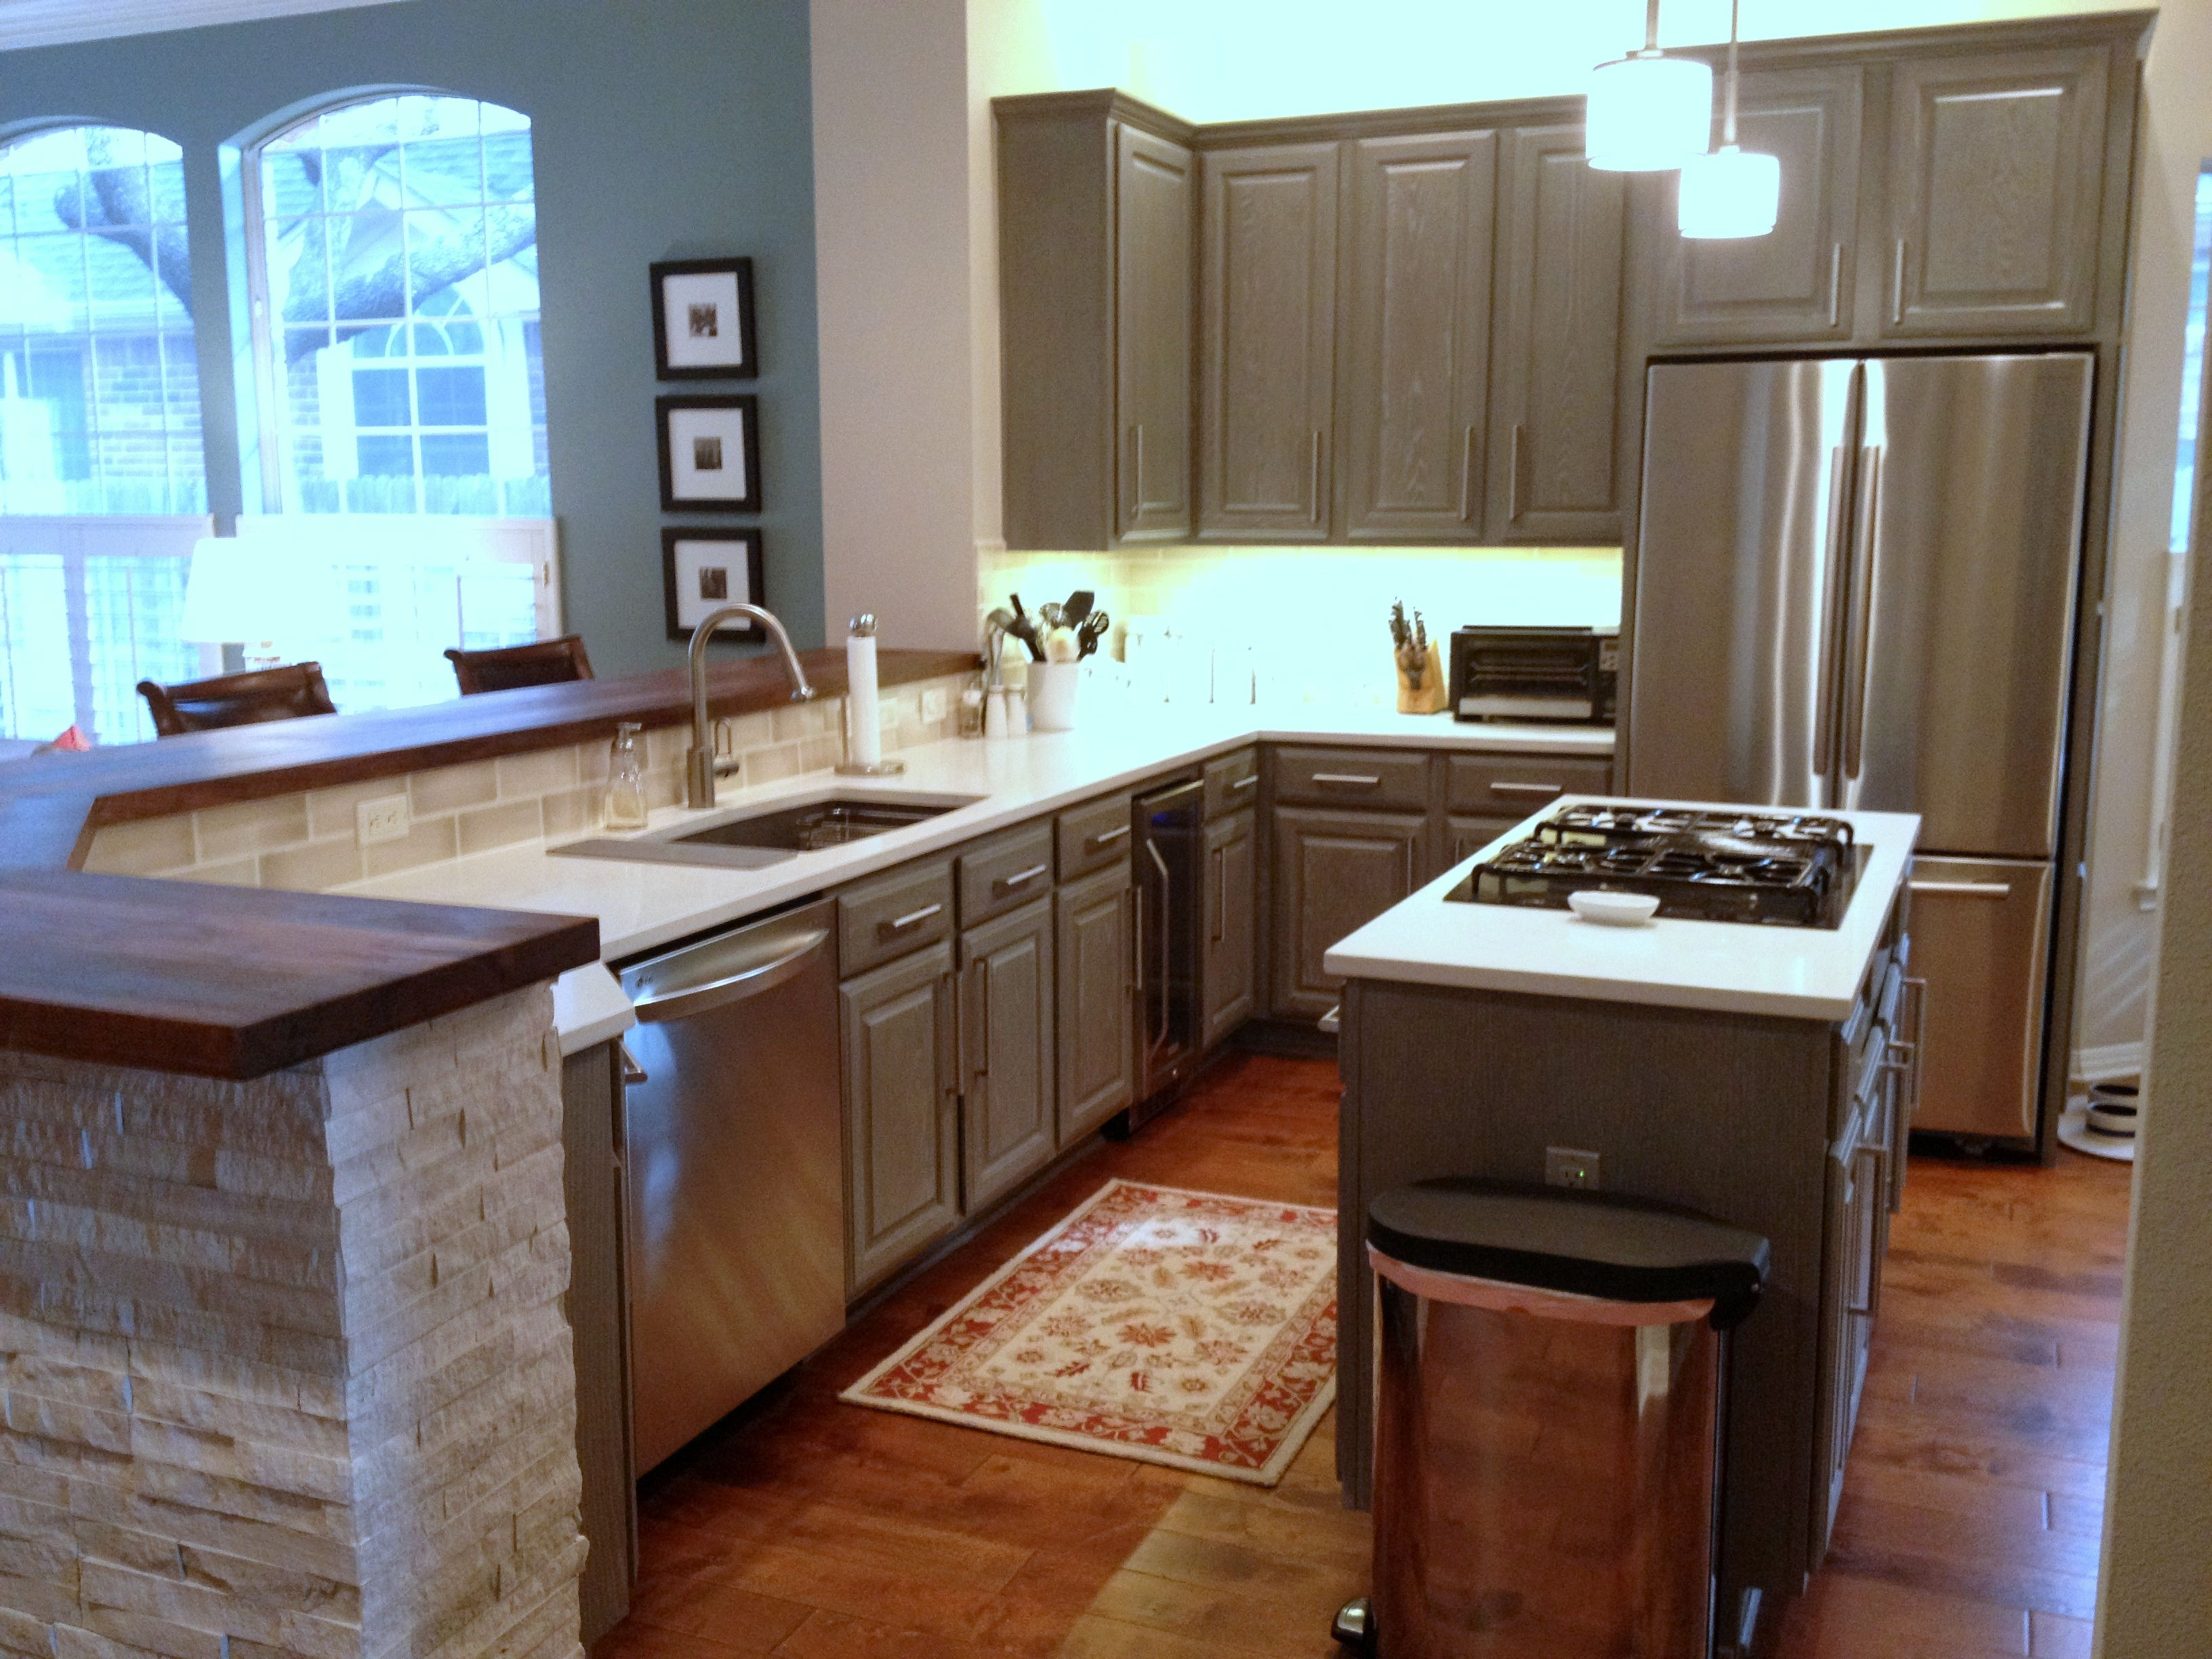 Best After Painted And Glazed Cabinets In Sherwin Williams 400 x 300